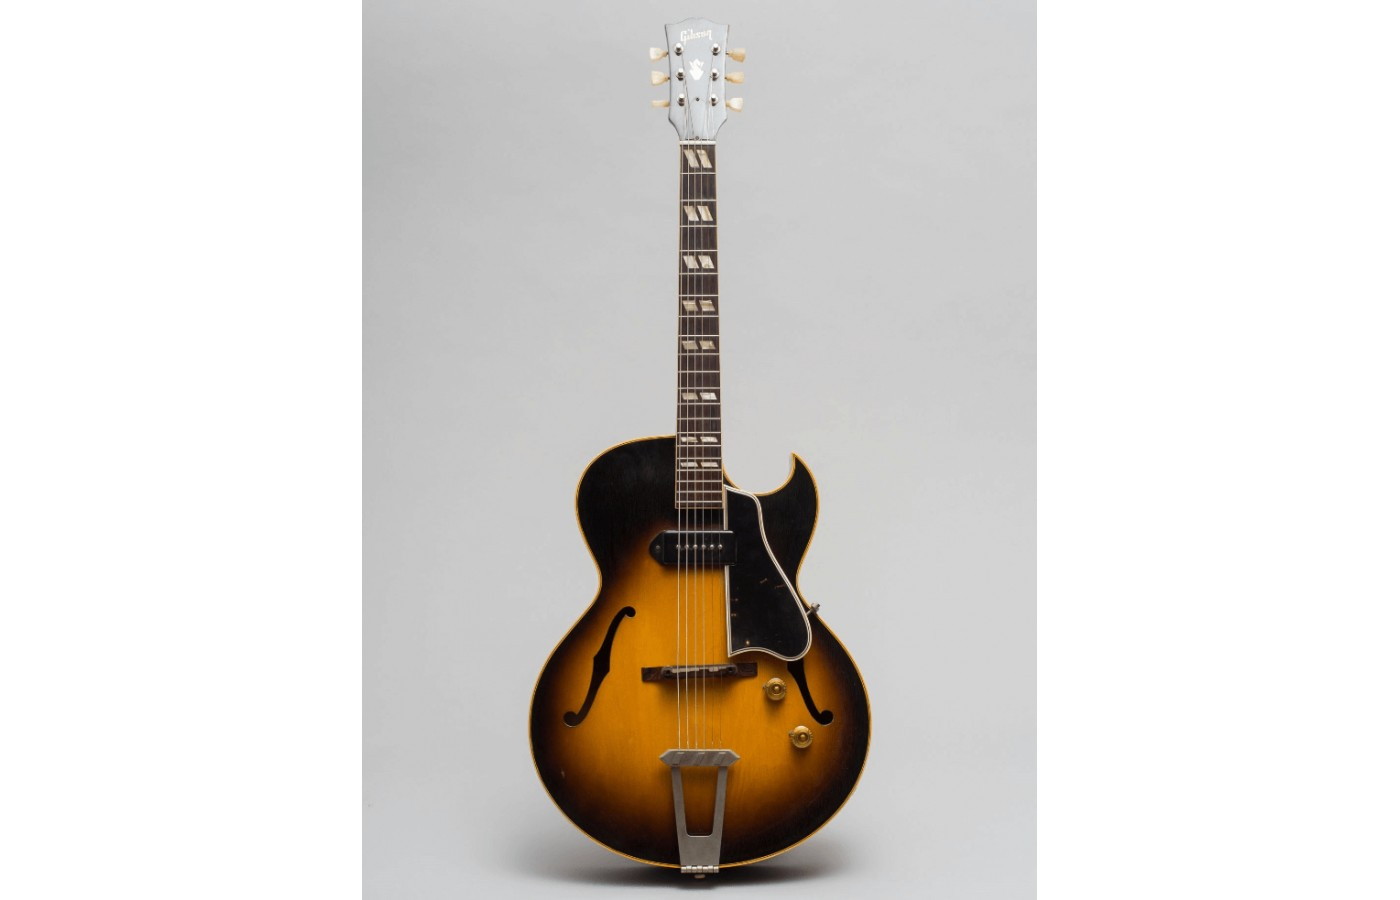 The ES 175 offers both vintage and new age in a perfect blend.